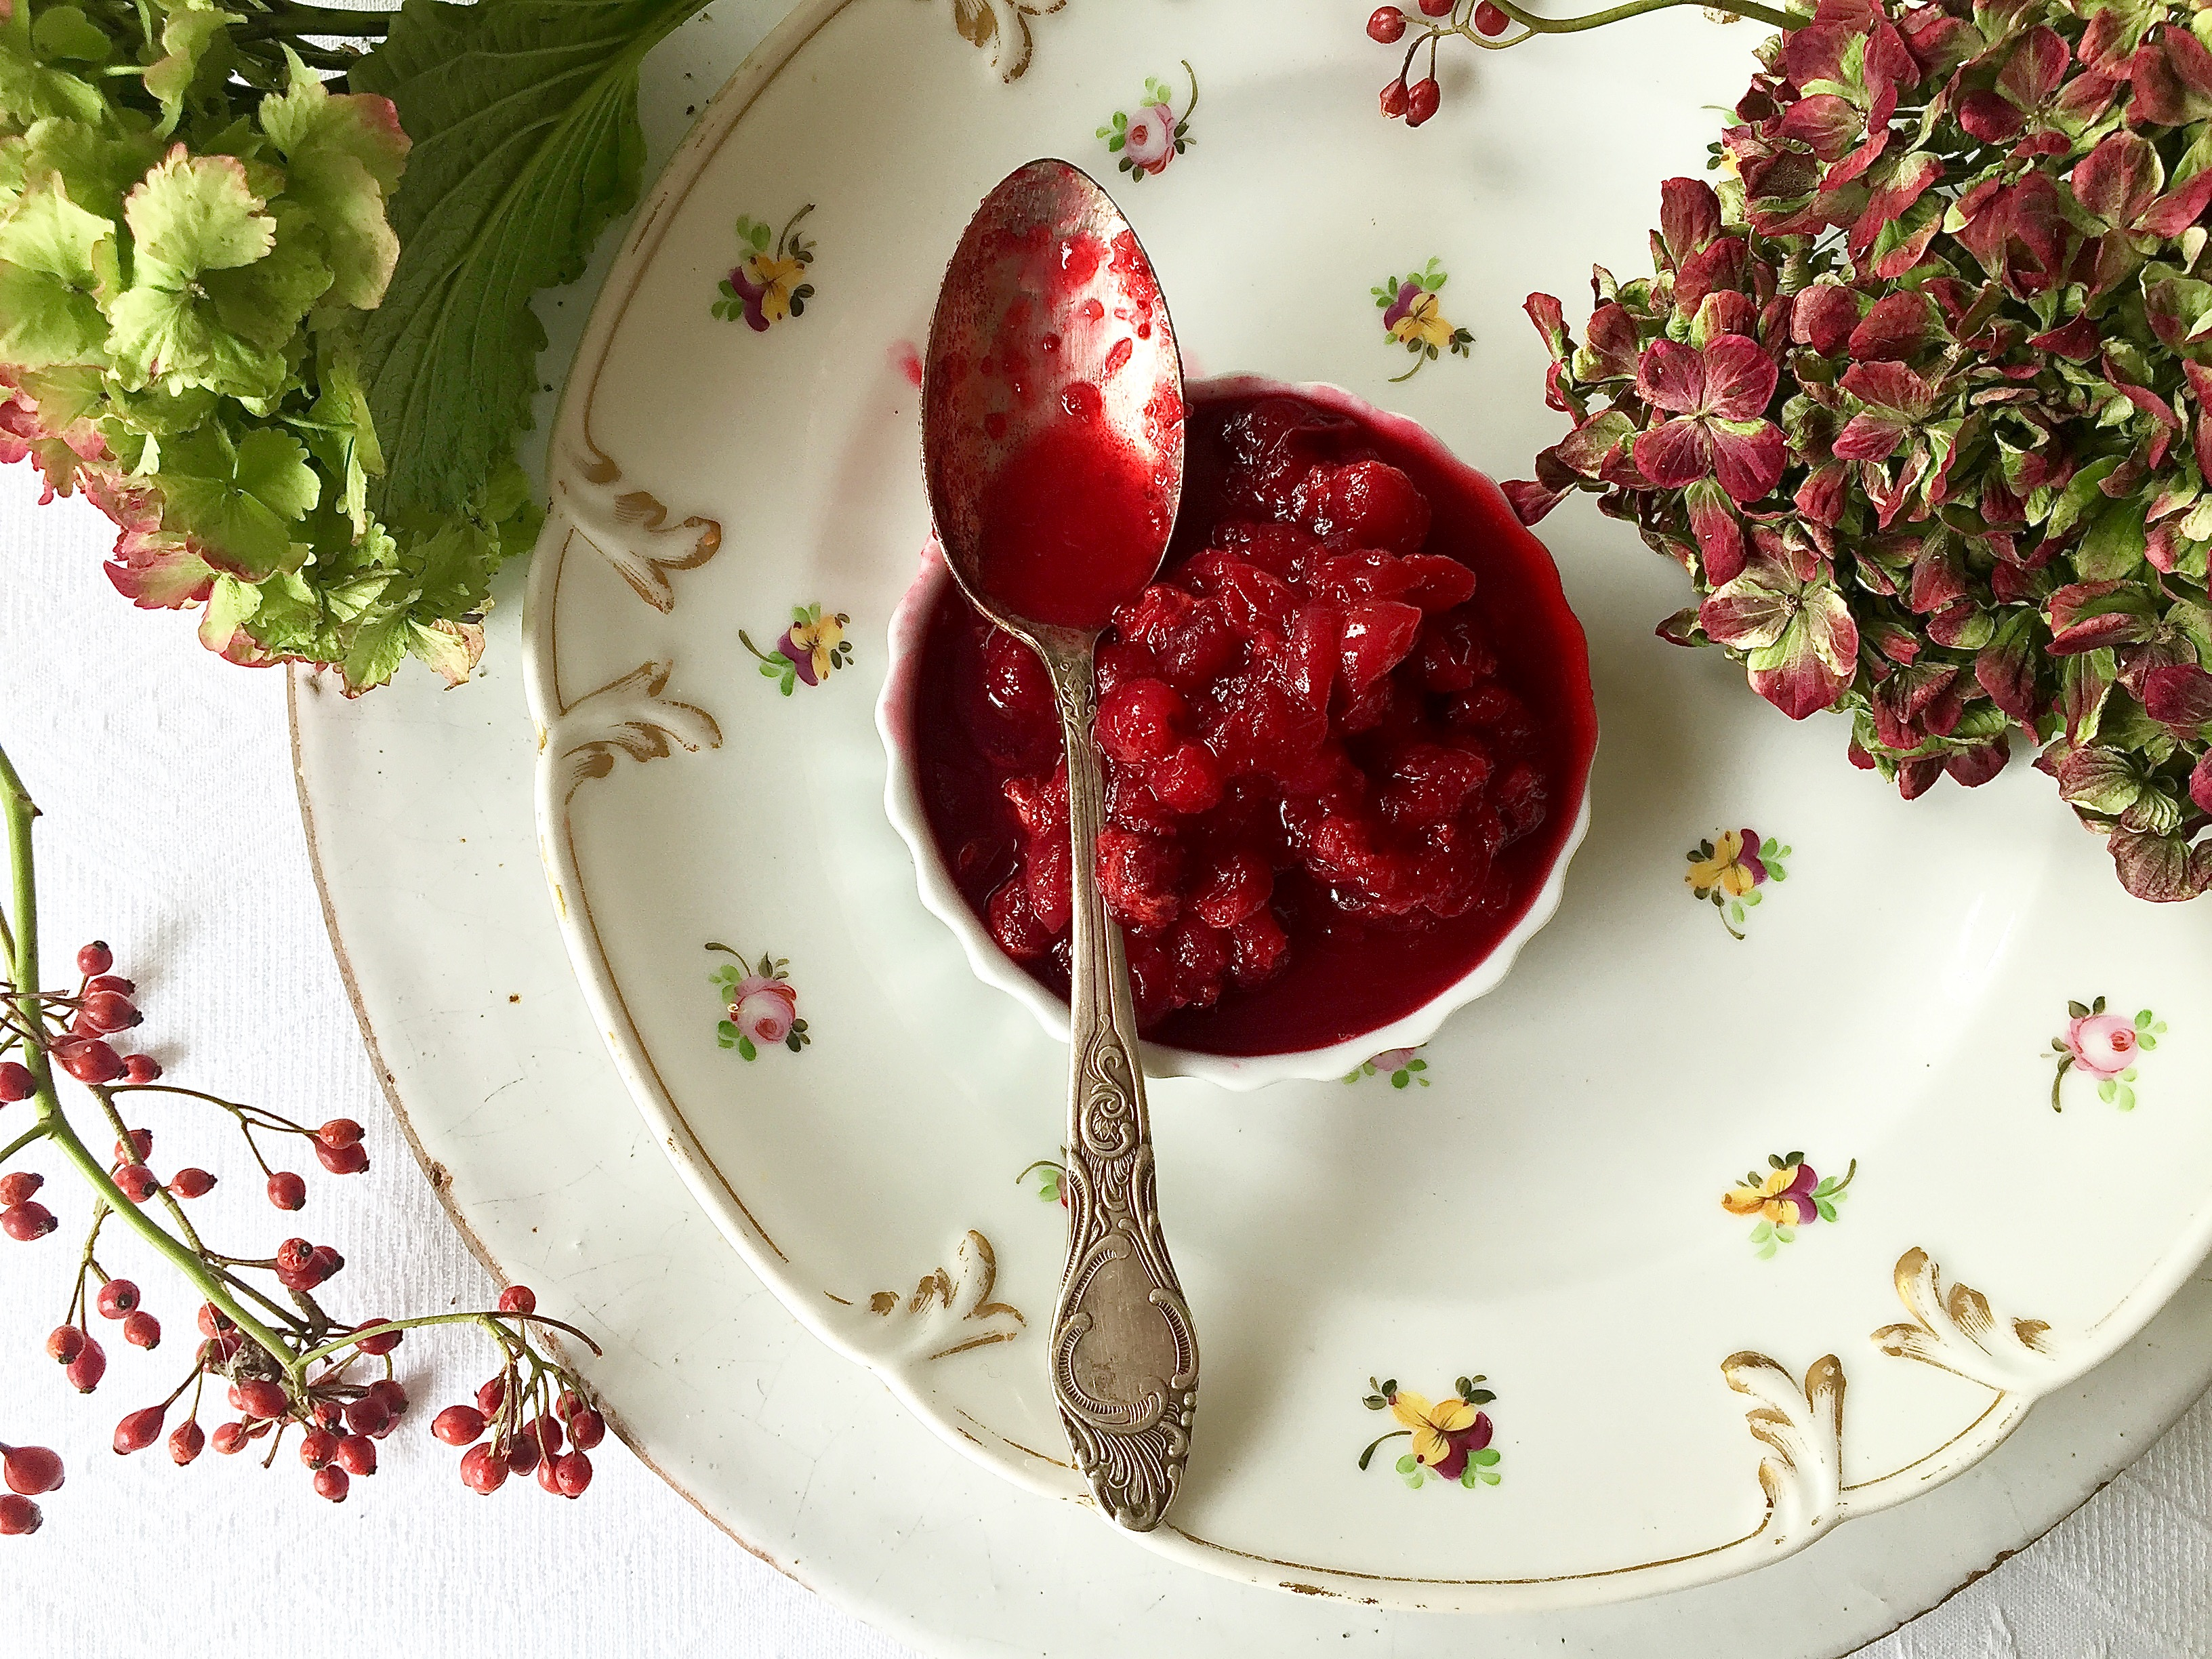 Cranberries and a silver spoon